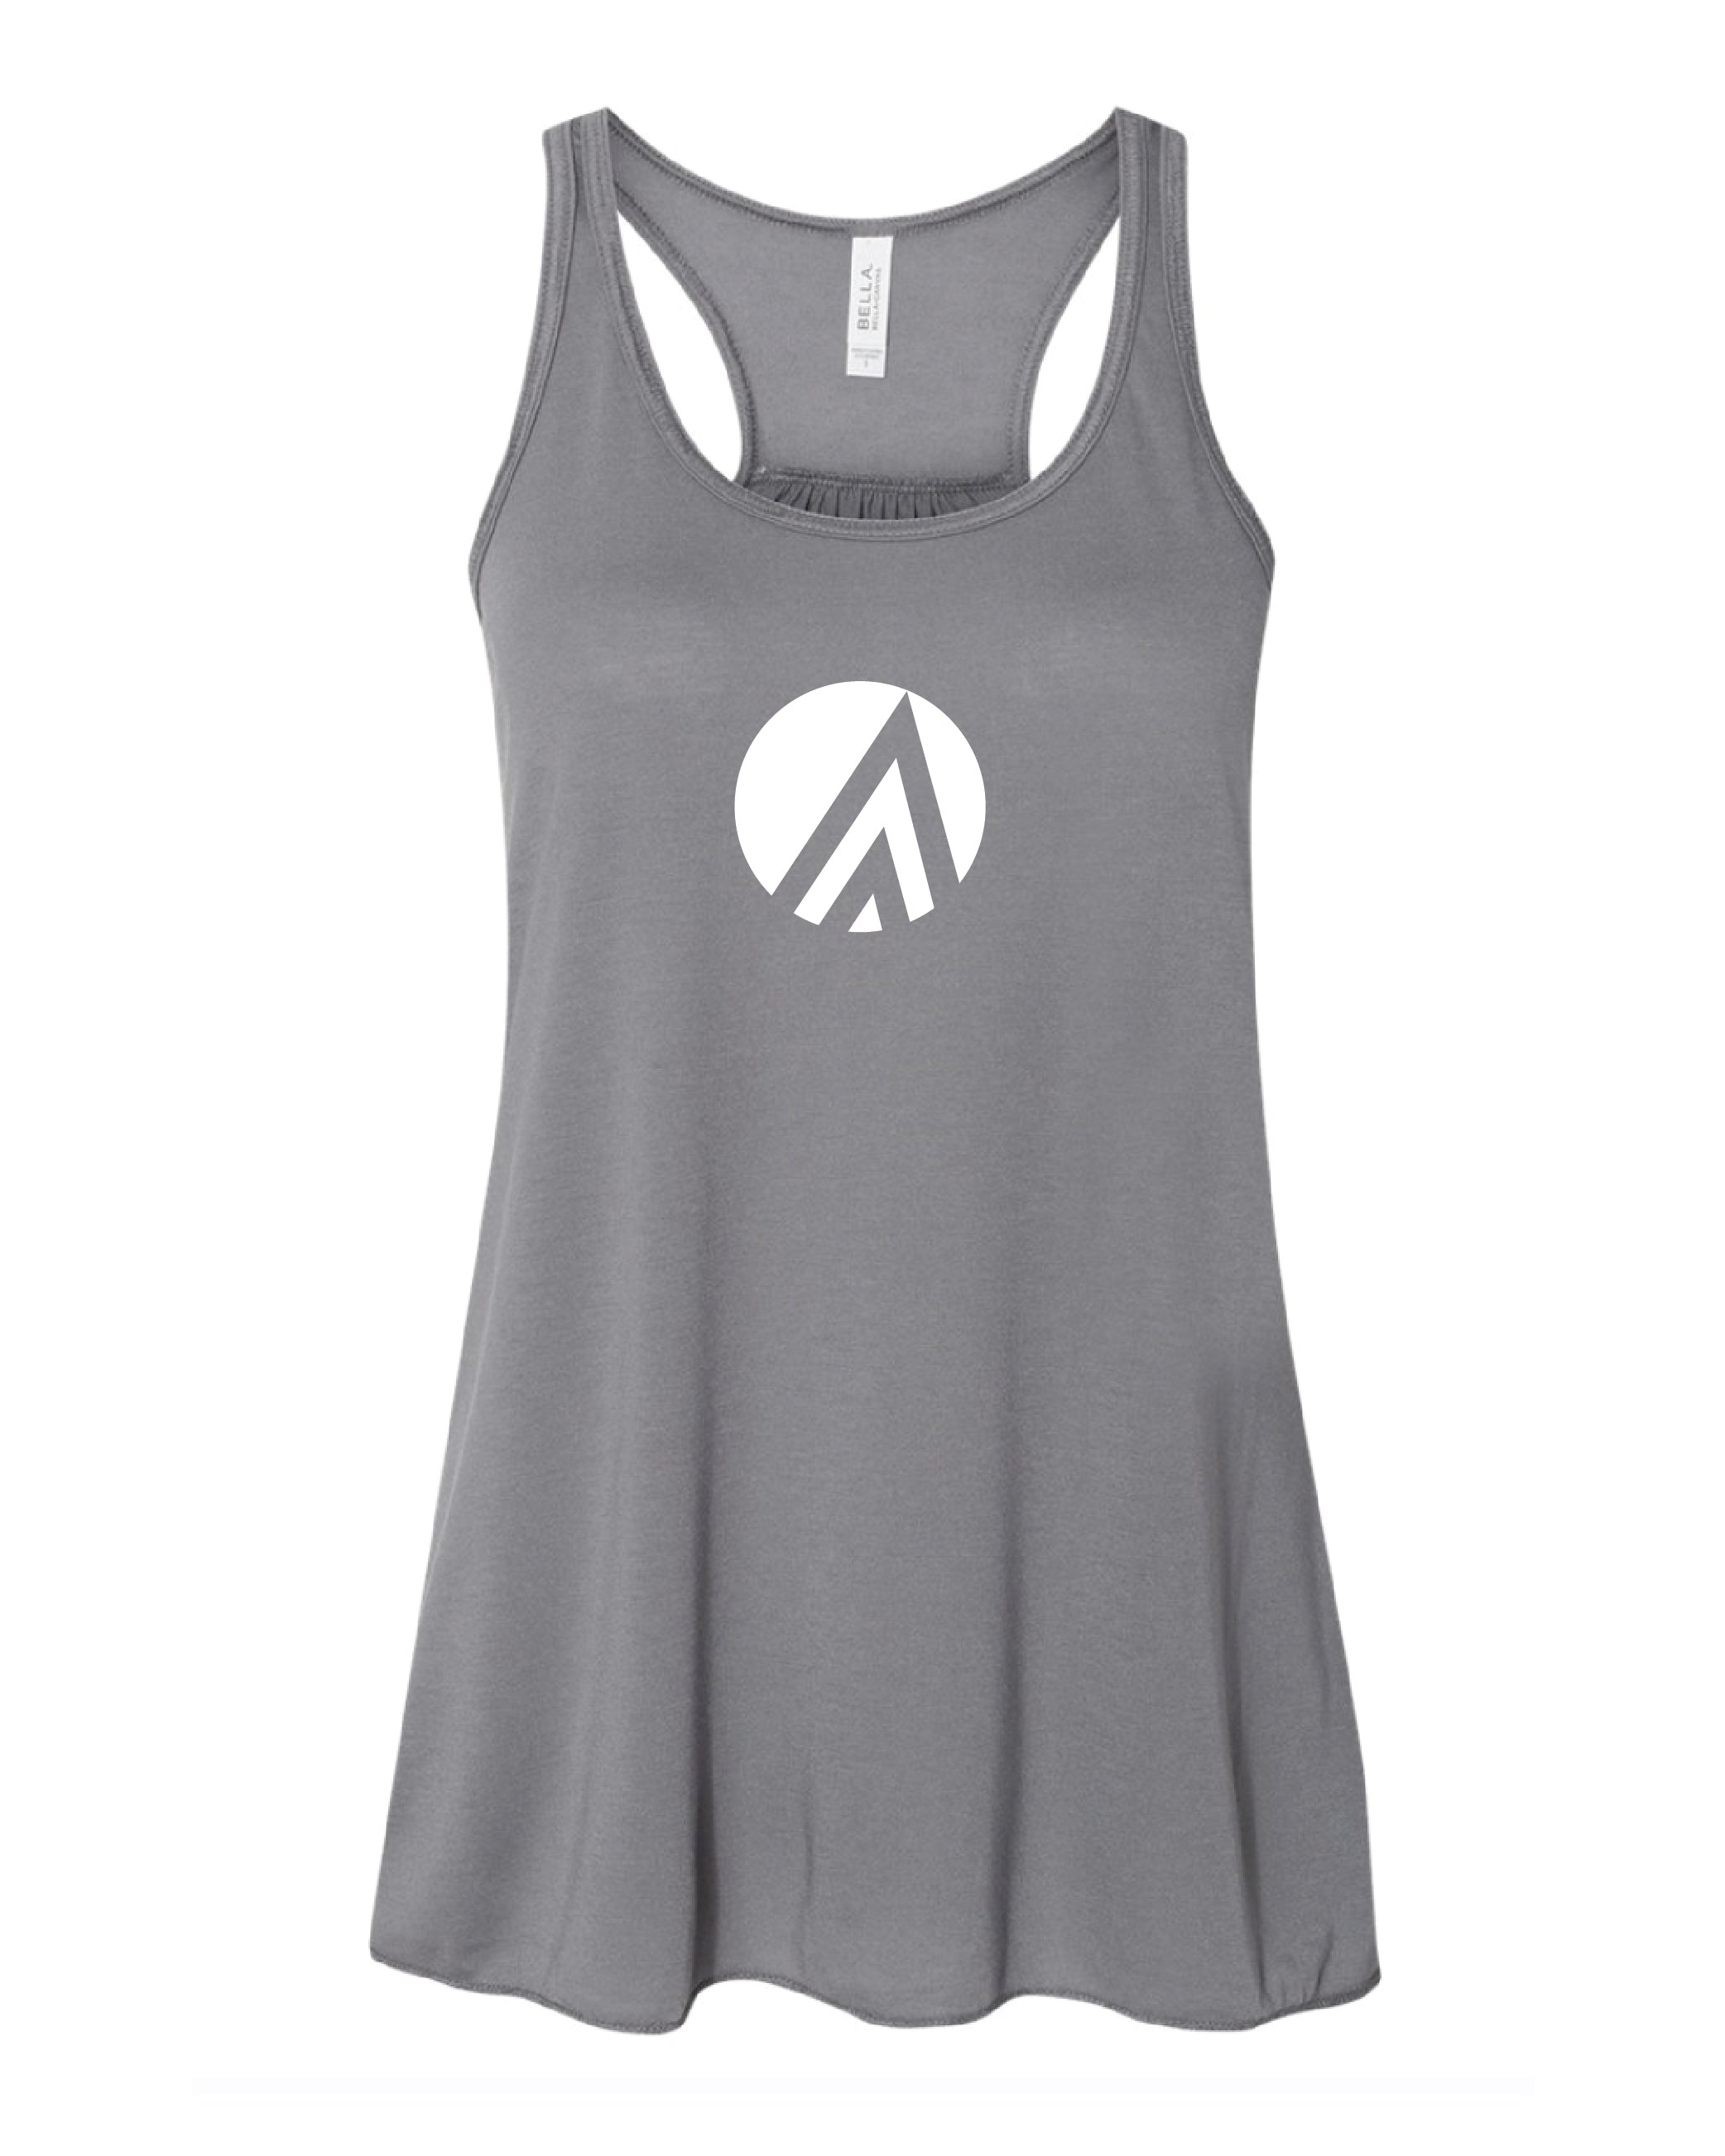 Super Soft Flowy Racerback Women's Tank - Storm Grey